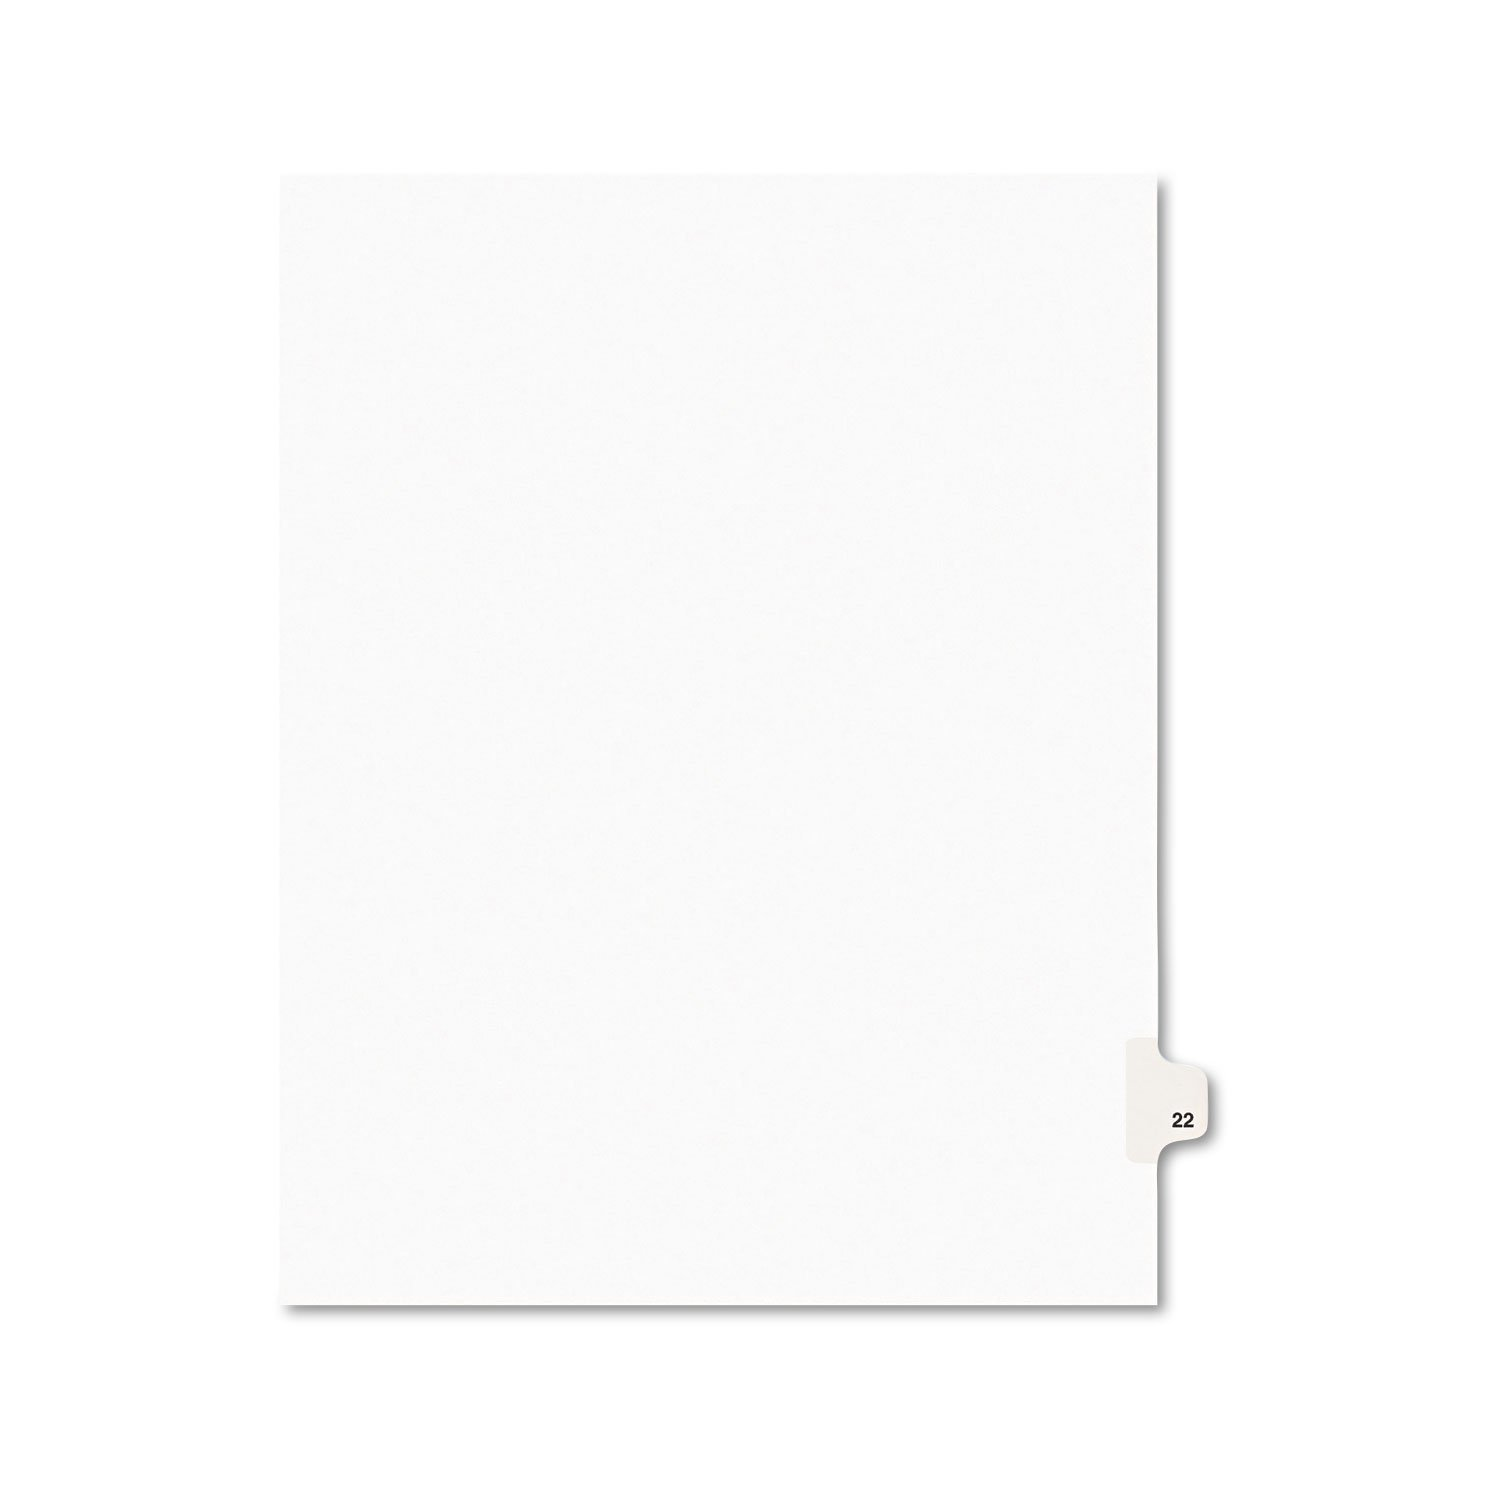 Avery 01022 Avery-Style Legal Exhibit Side Tab Divider, Title: 22, Letter, White, 25/Pack AVERY-DENNISON-KNM